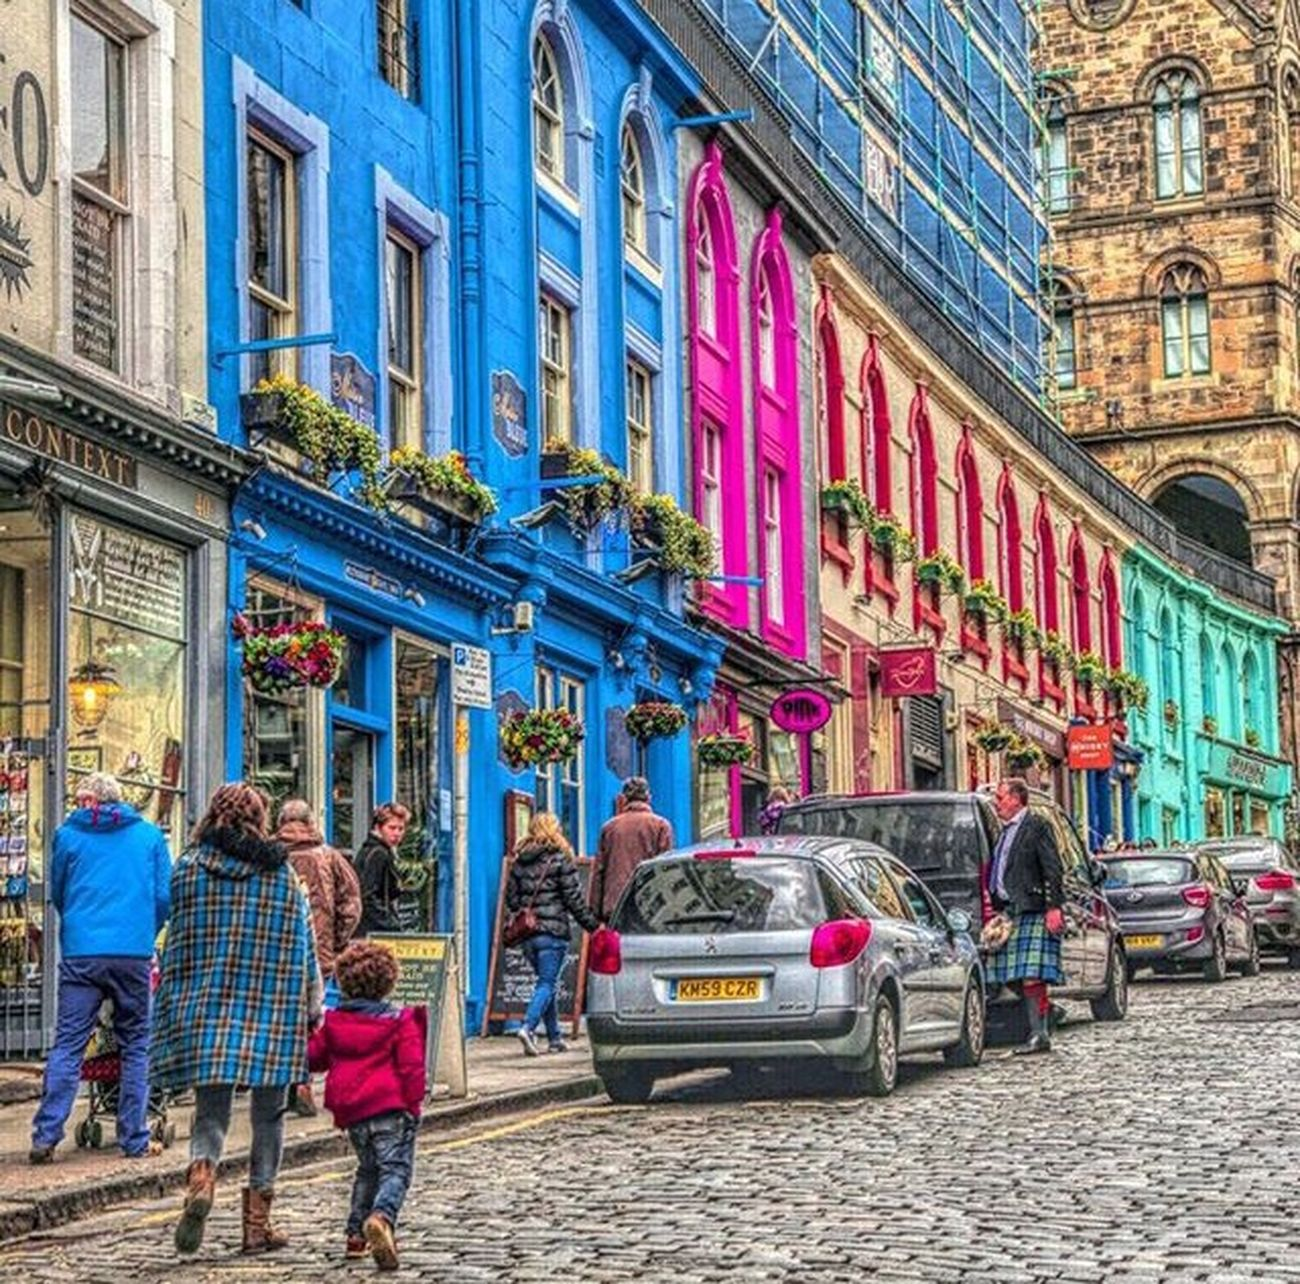 Exploring Style Street Building Exterior City Street Architecture Built Structure Outdoors Large Group Of People Buildingstyles Building Feature EyeEm Gallery Streetphoto_color Travel Photography Picoftheday Photooftheday Travel Taking Photos Taking Pictures Arts Culture And Entertainment Streetphotography City Street Street Photography Streetlife City Architecture